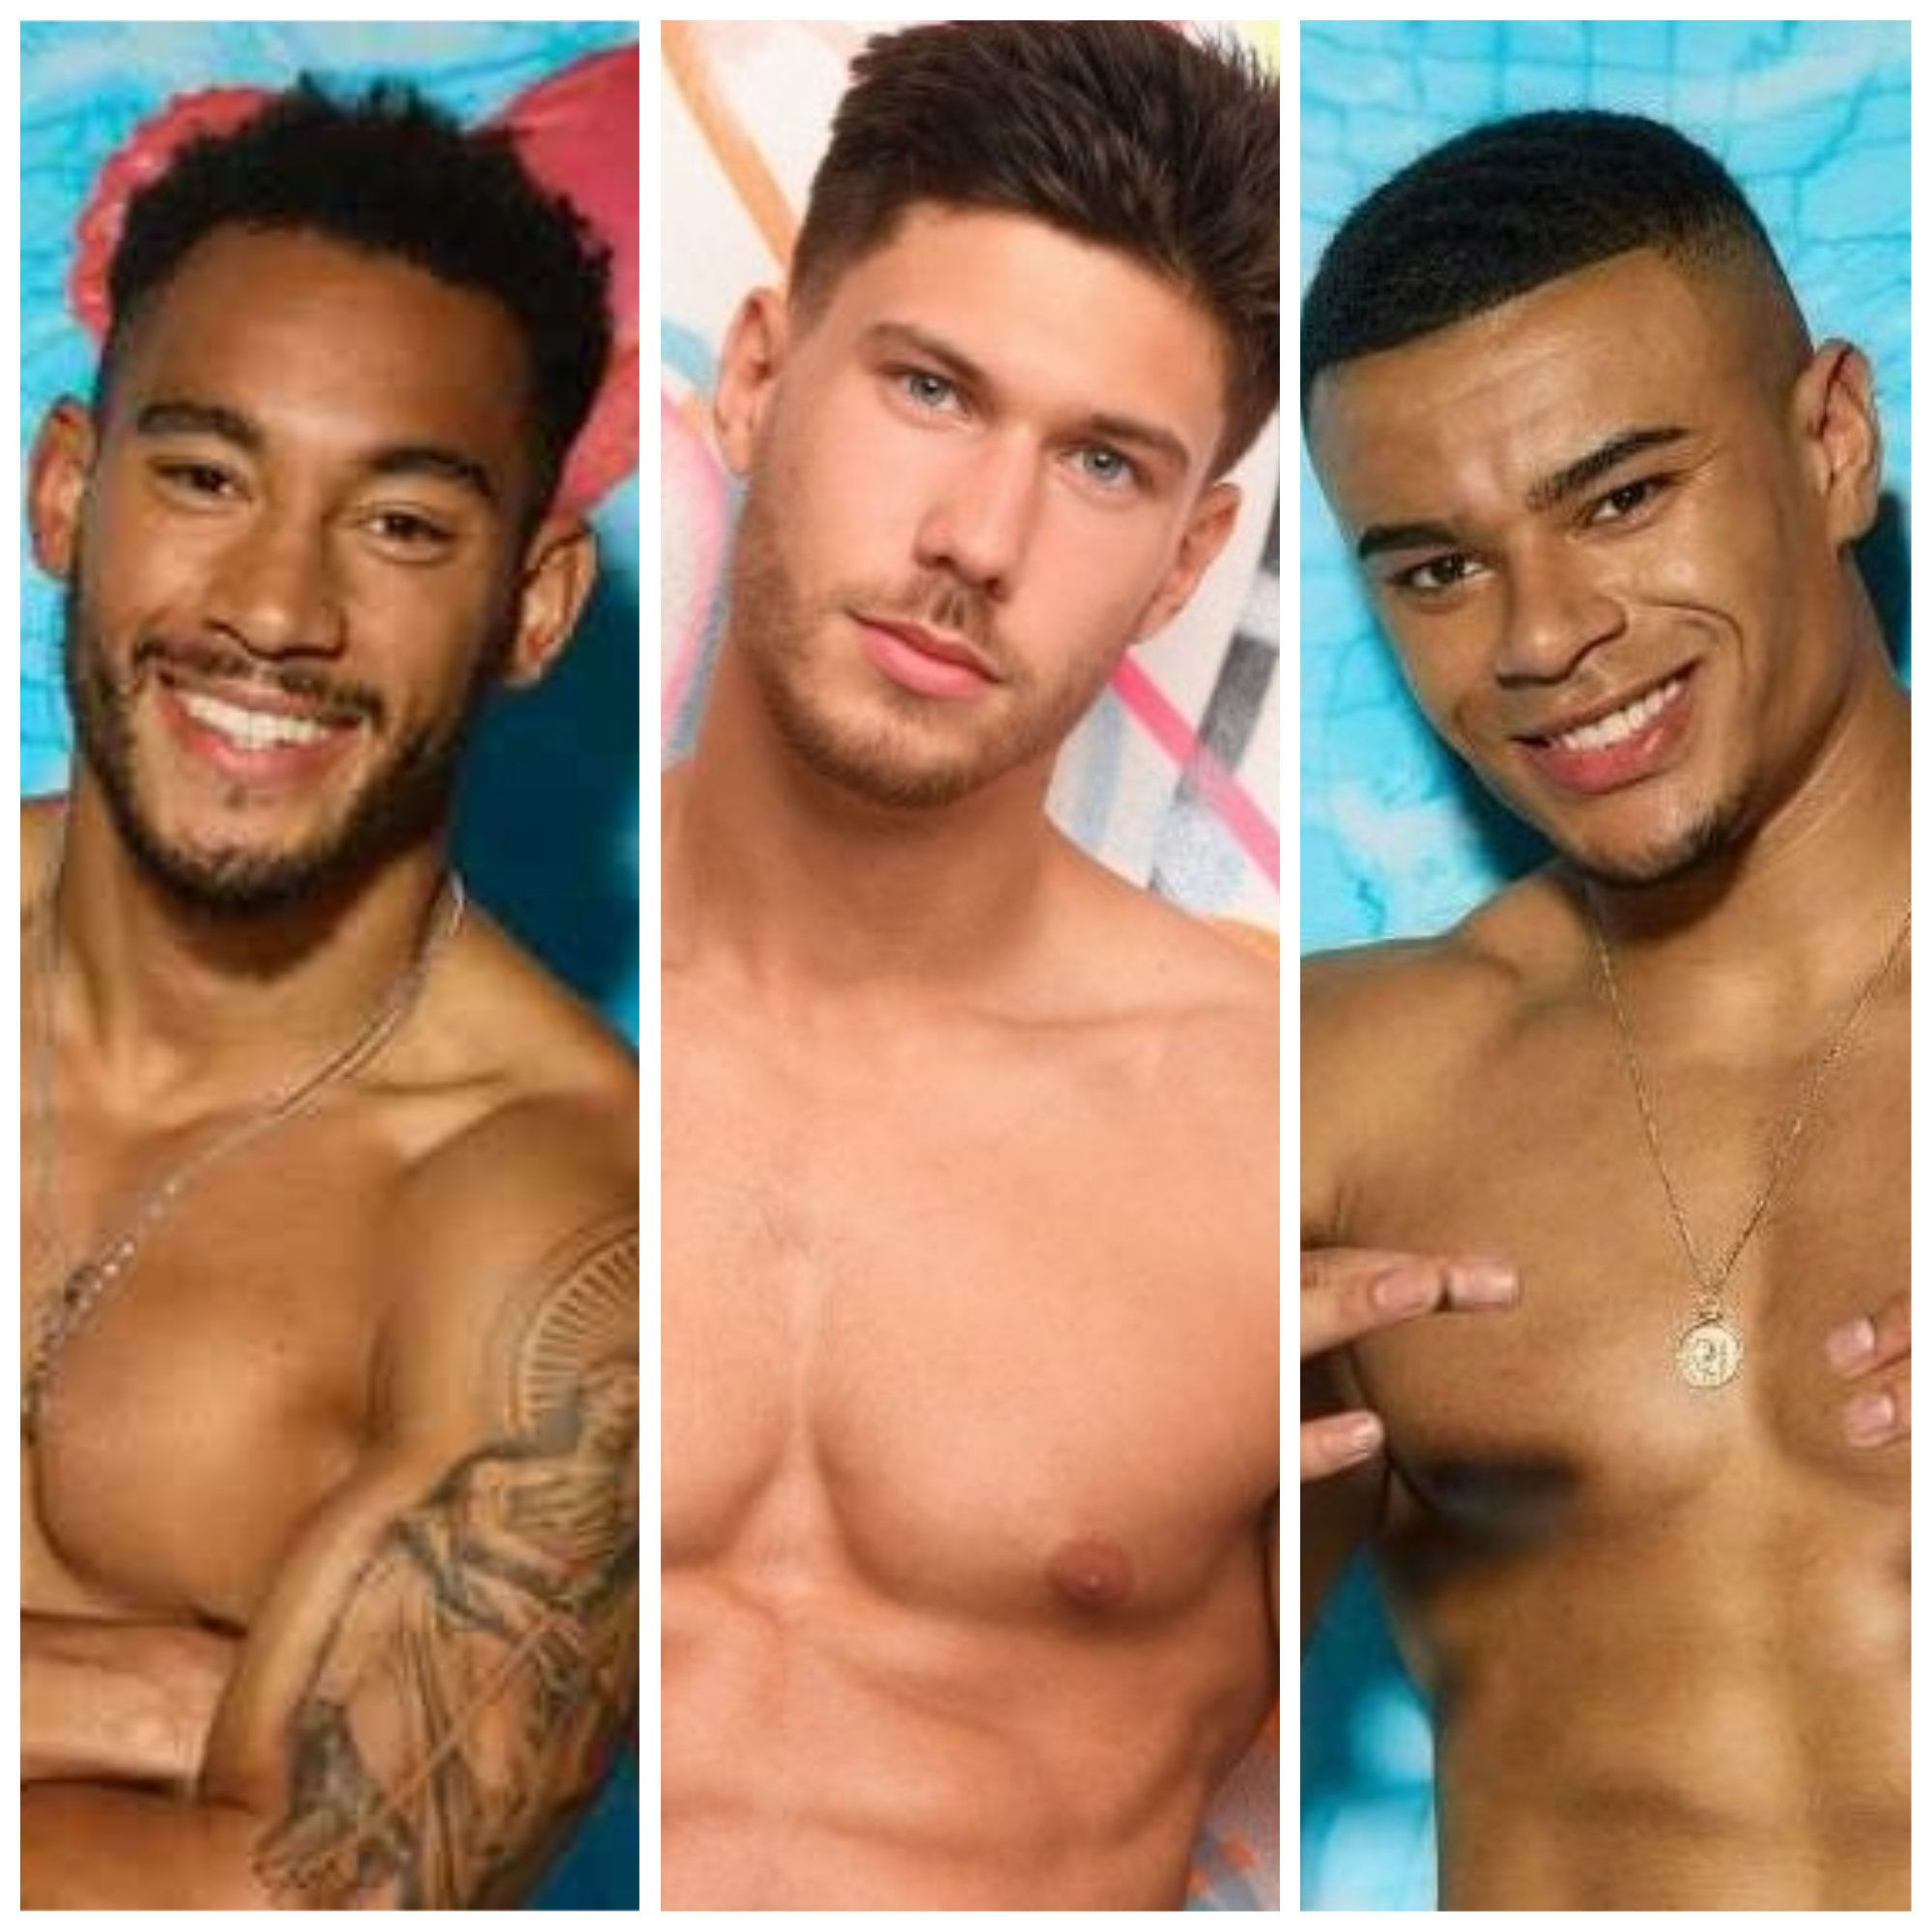 'I'm Happy, But I Could Be Happier': How Love Island Reflects Our Throwaway Dating